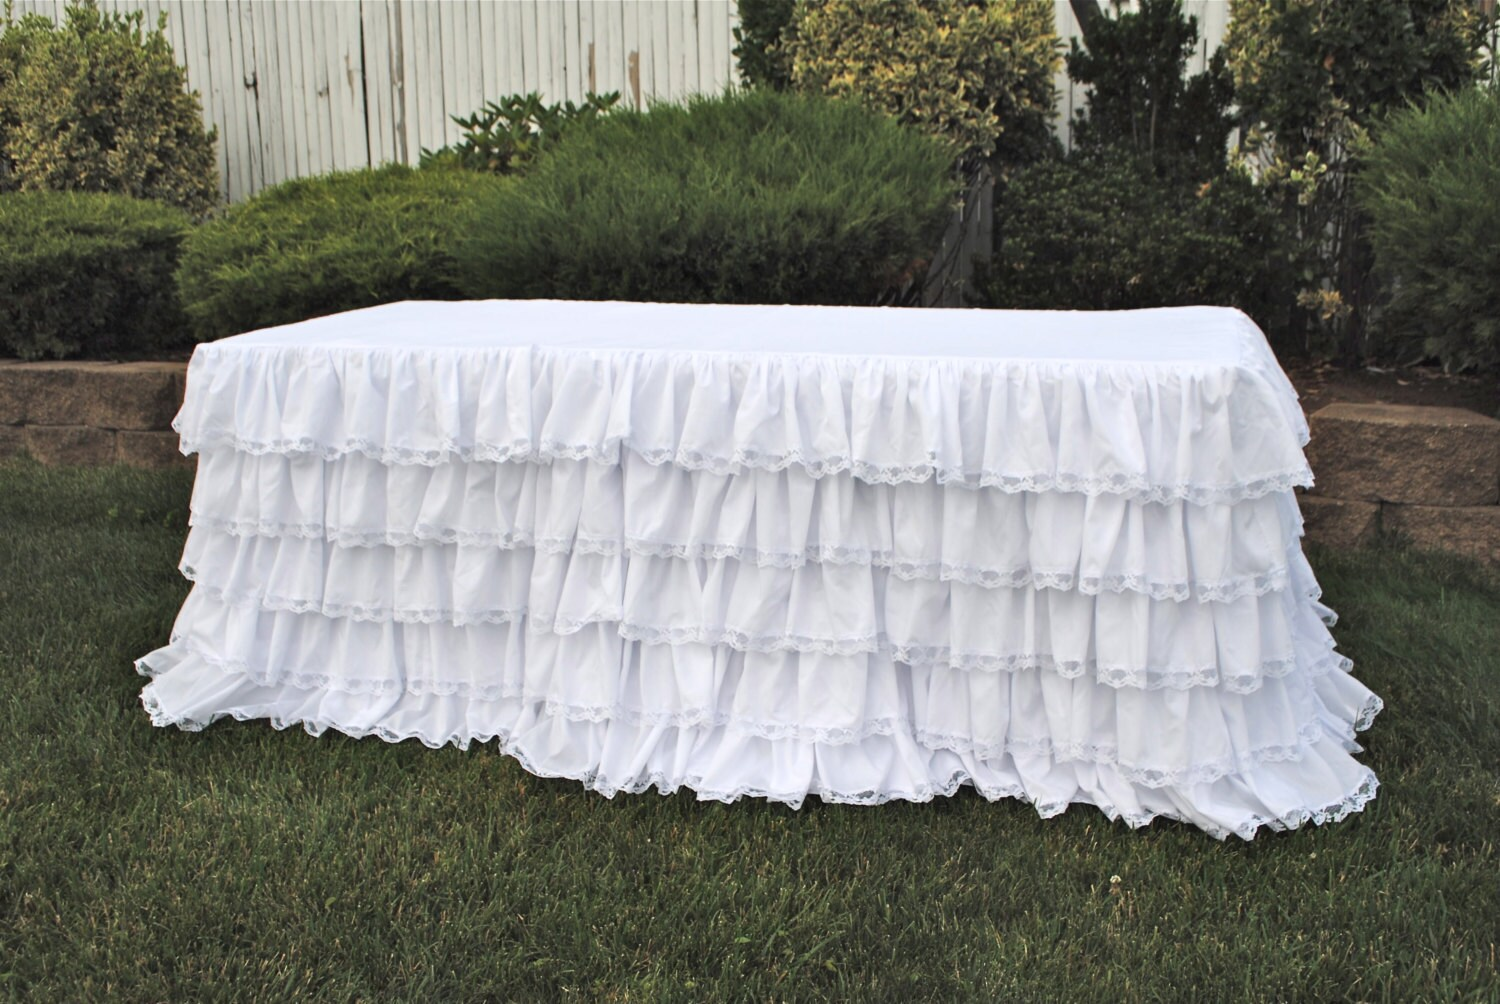 White Ruffled Lace Tablecloth Ruffled Tablecloth